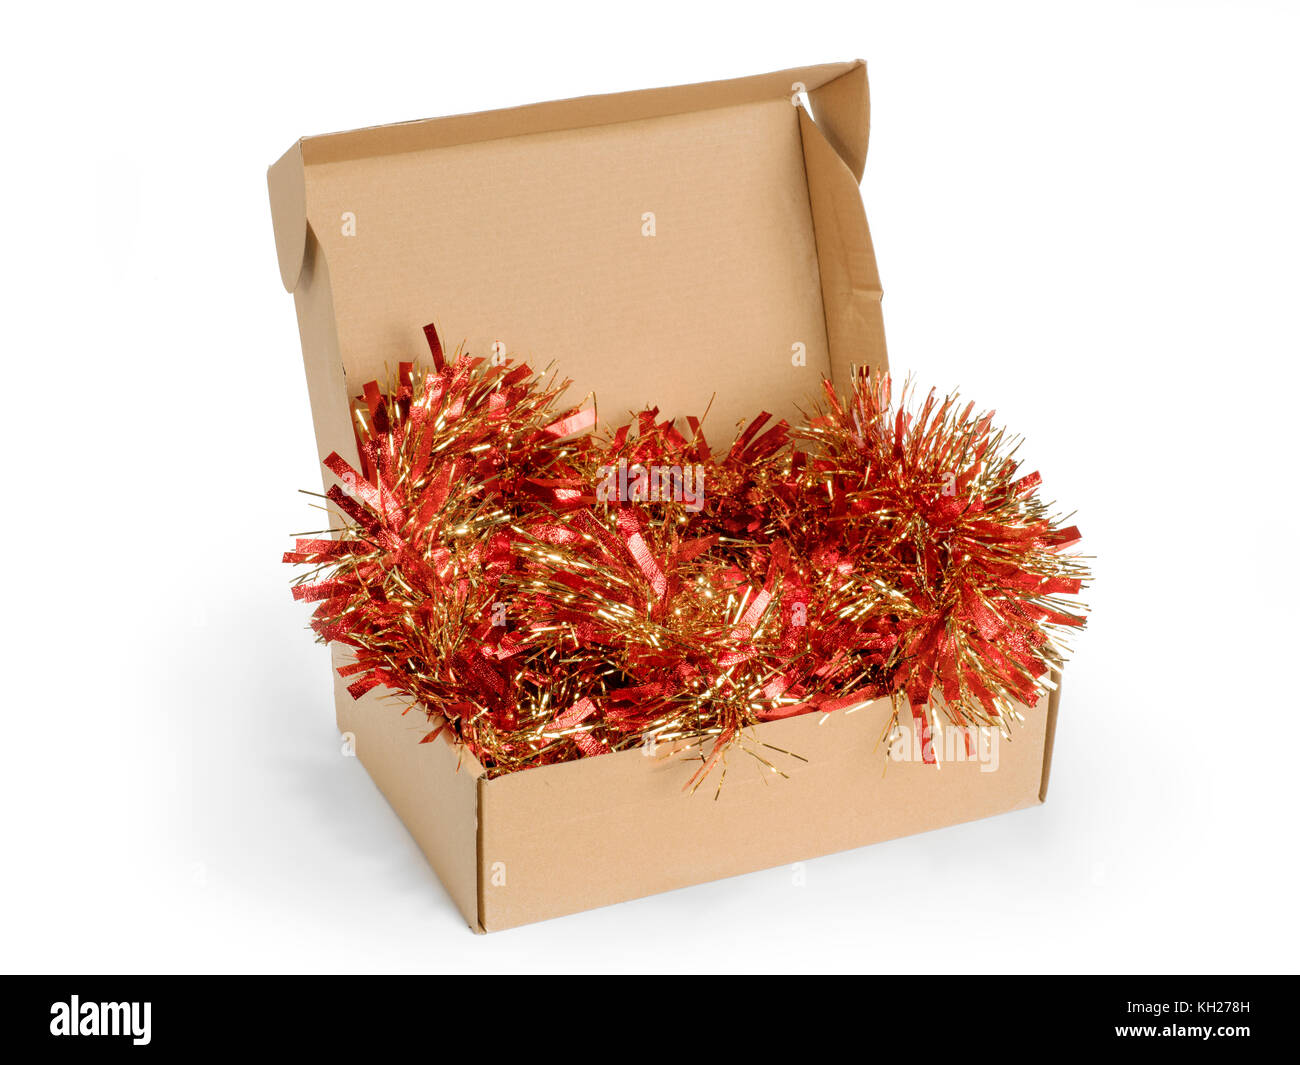 cardboard box with christmas tinsel isolated on white stock image - Cardboard Box Christmas Decorations